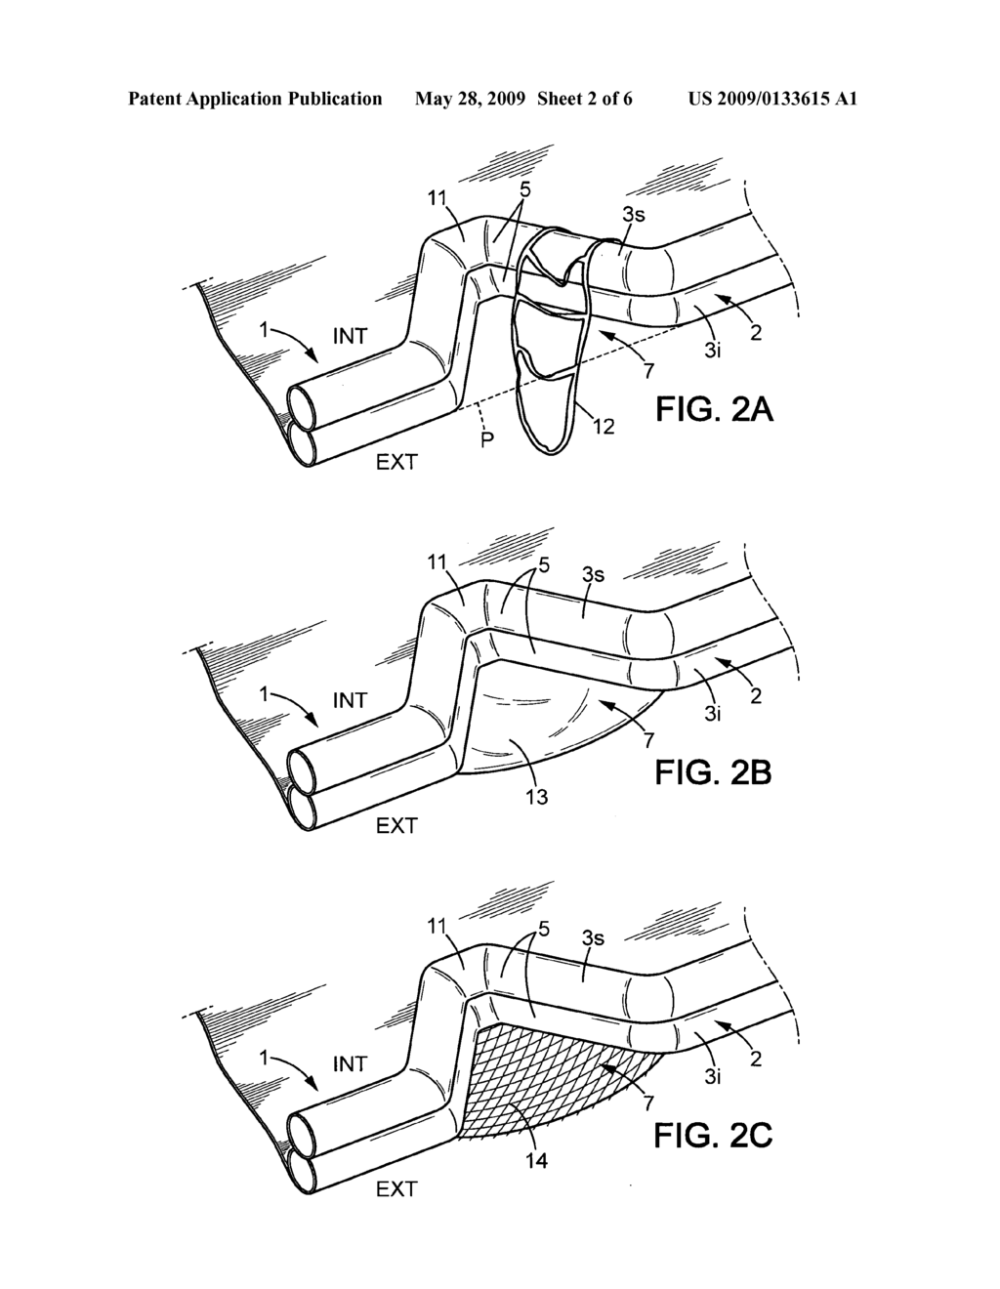 medium resolution of boat with a peripheral float particularly inflatable life raft diagram schematic and image 03